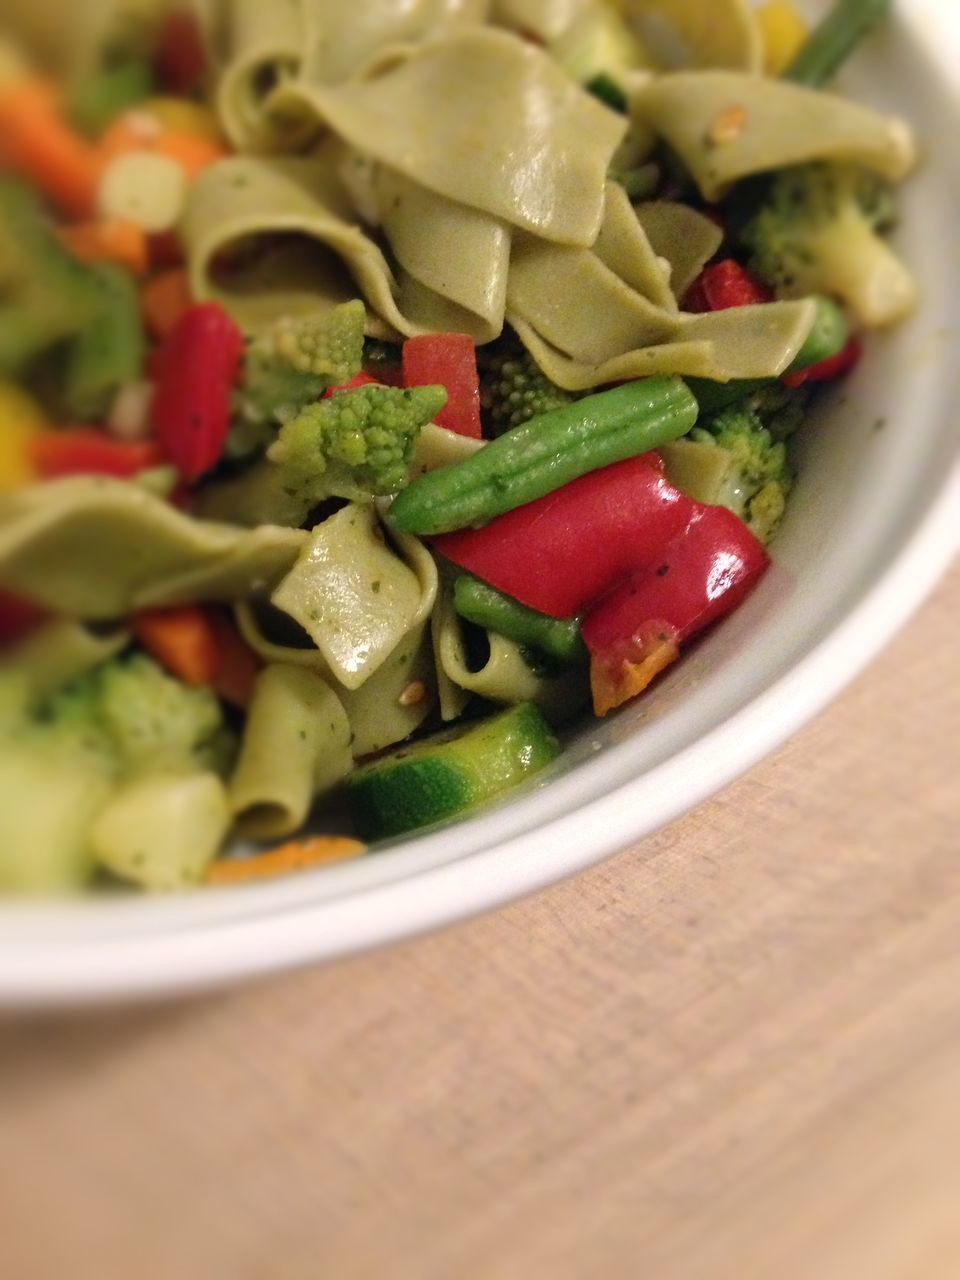 food and drink, food, freshness, bowl, vegetable, close-up, healthy eating, no people, ready-to-eat, indoors, plate, salad, day